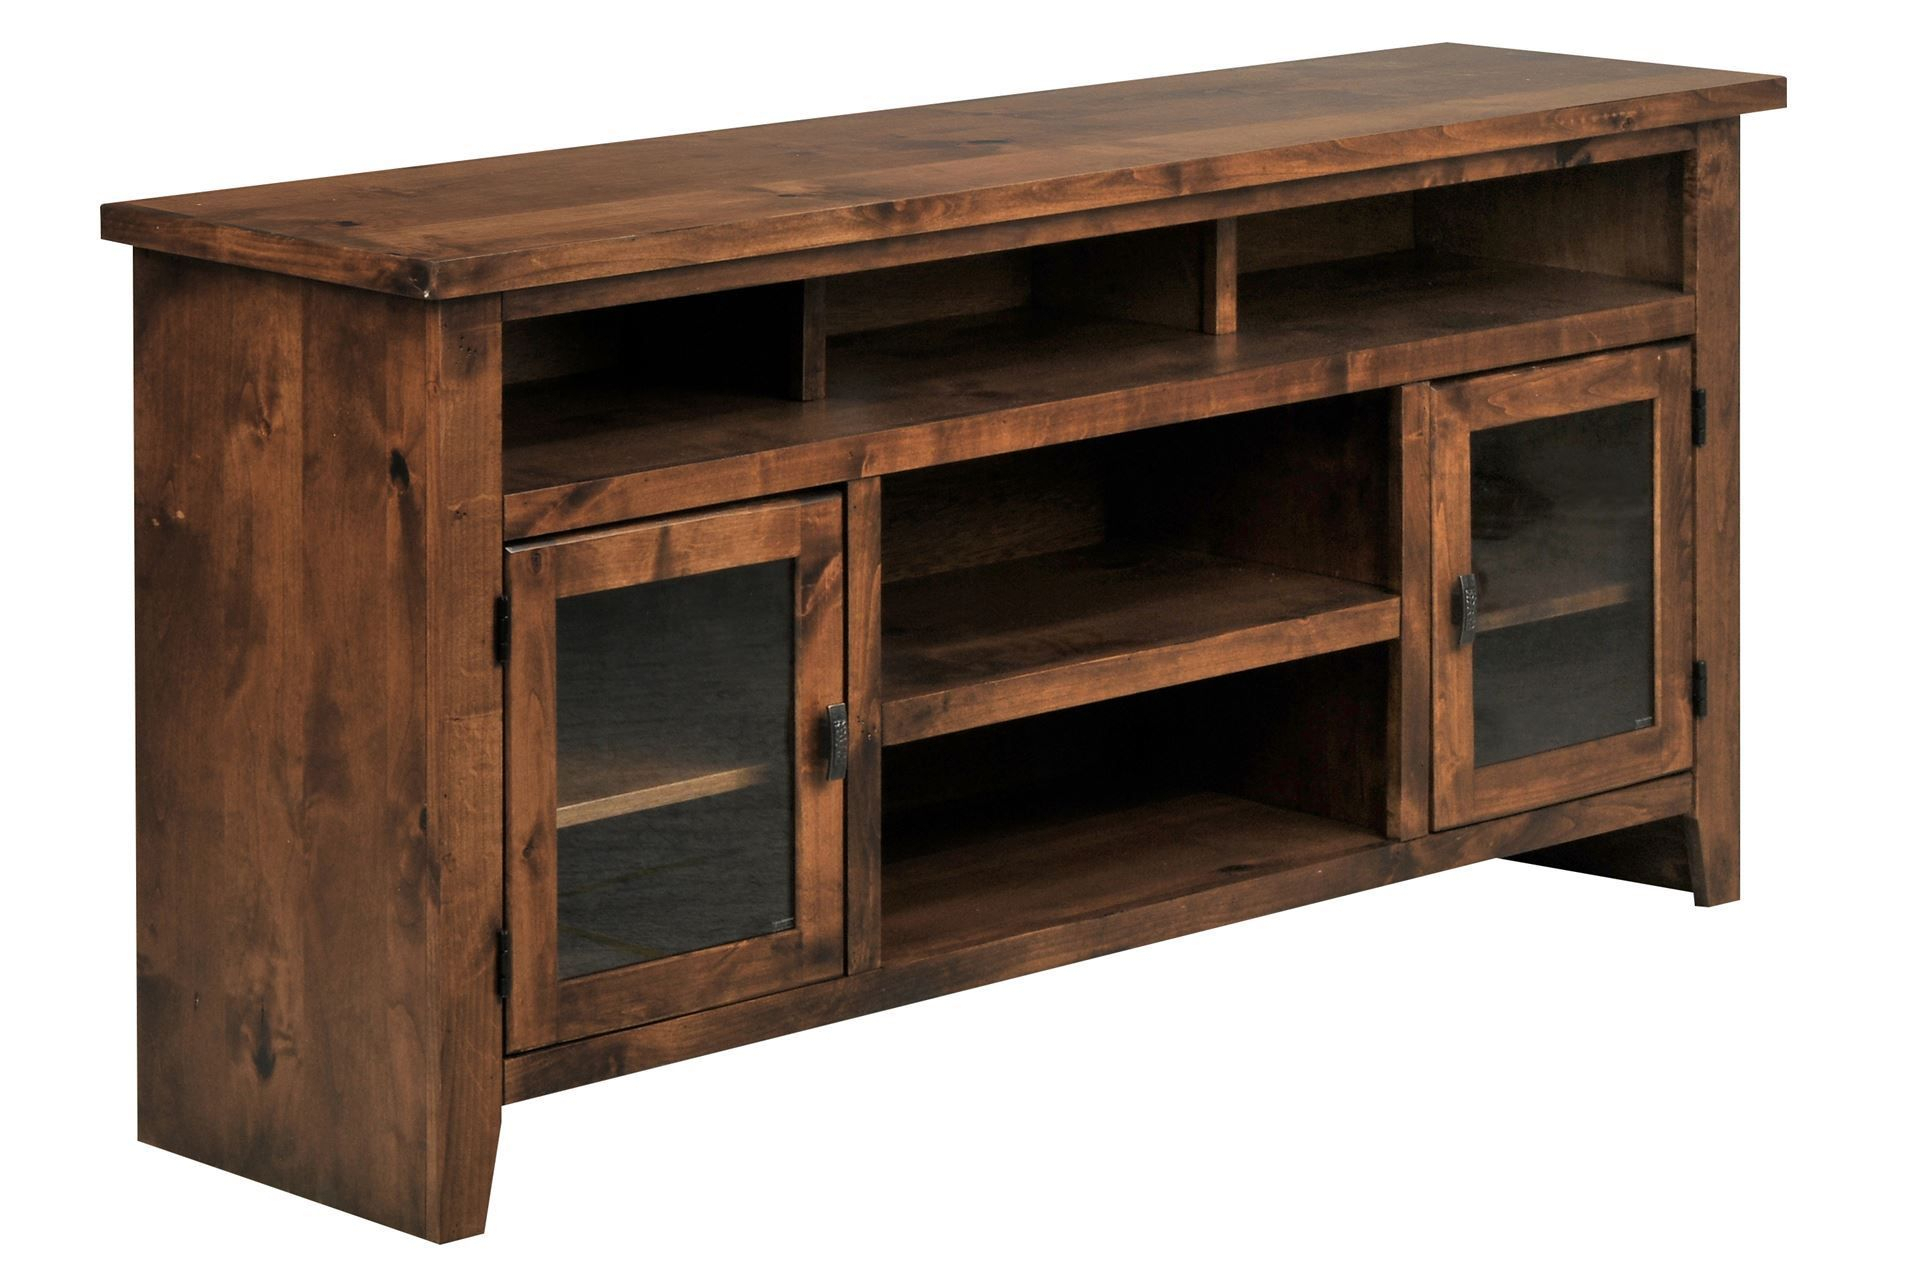 65 Inch Tv Stand, Trent, Fruitwood | 65 Inch Tv Stand, Tv Stands And Tvs For Sinclair White 64 Inch Tv Stands (View 6 of 30)